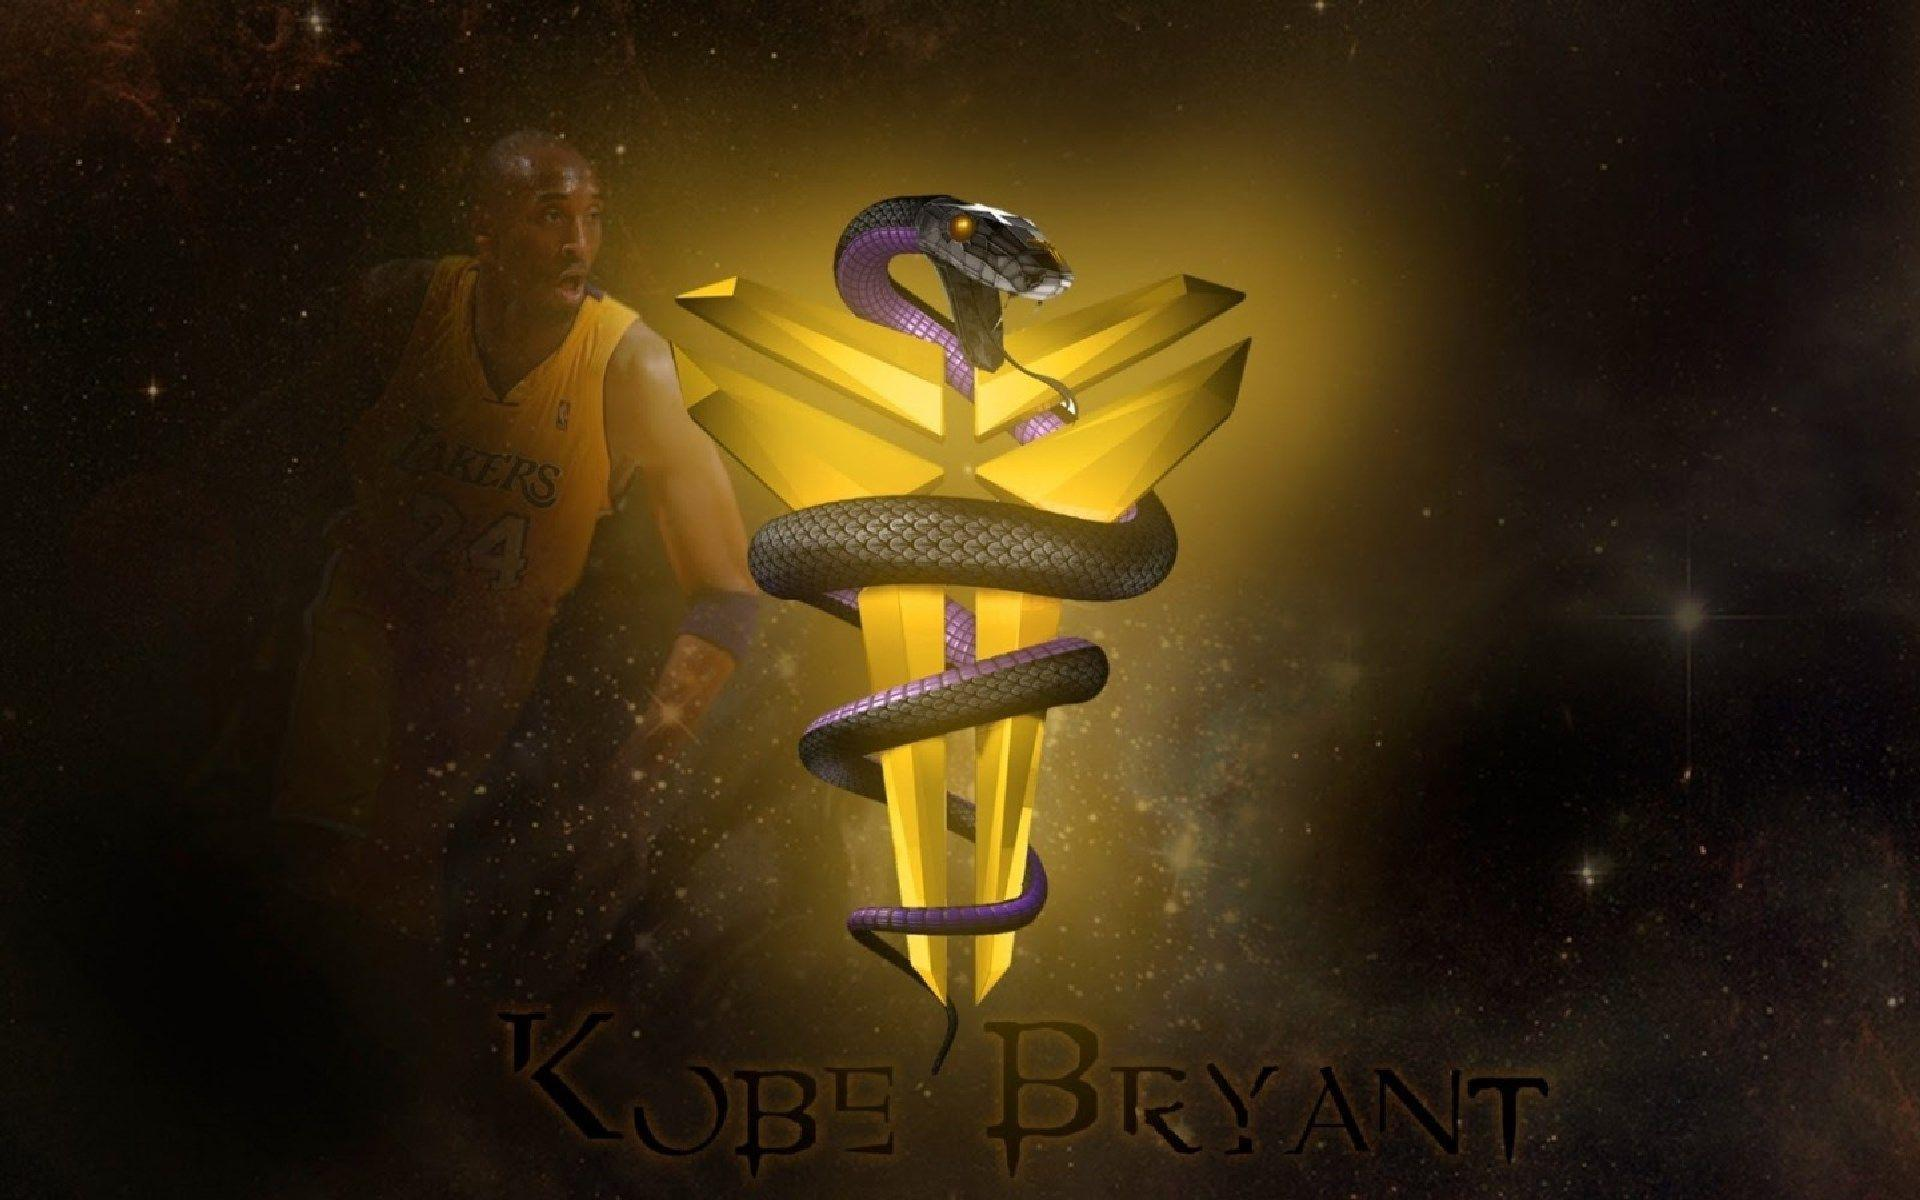 kobe bryant wallpaper 2016 - photo #20